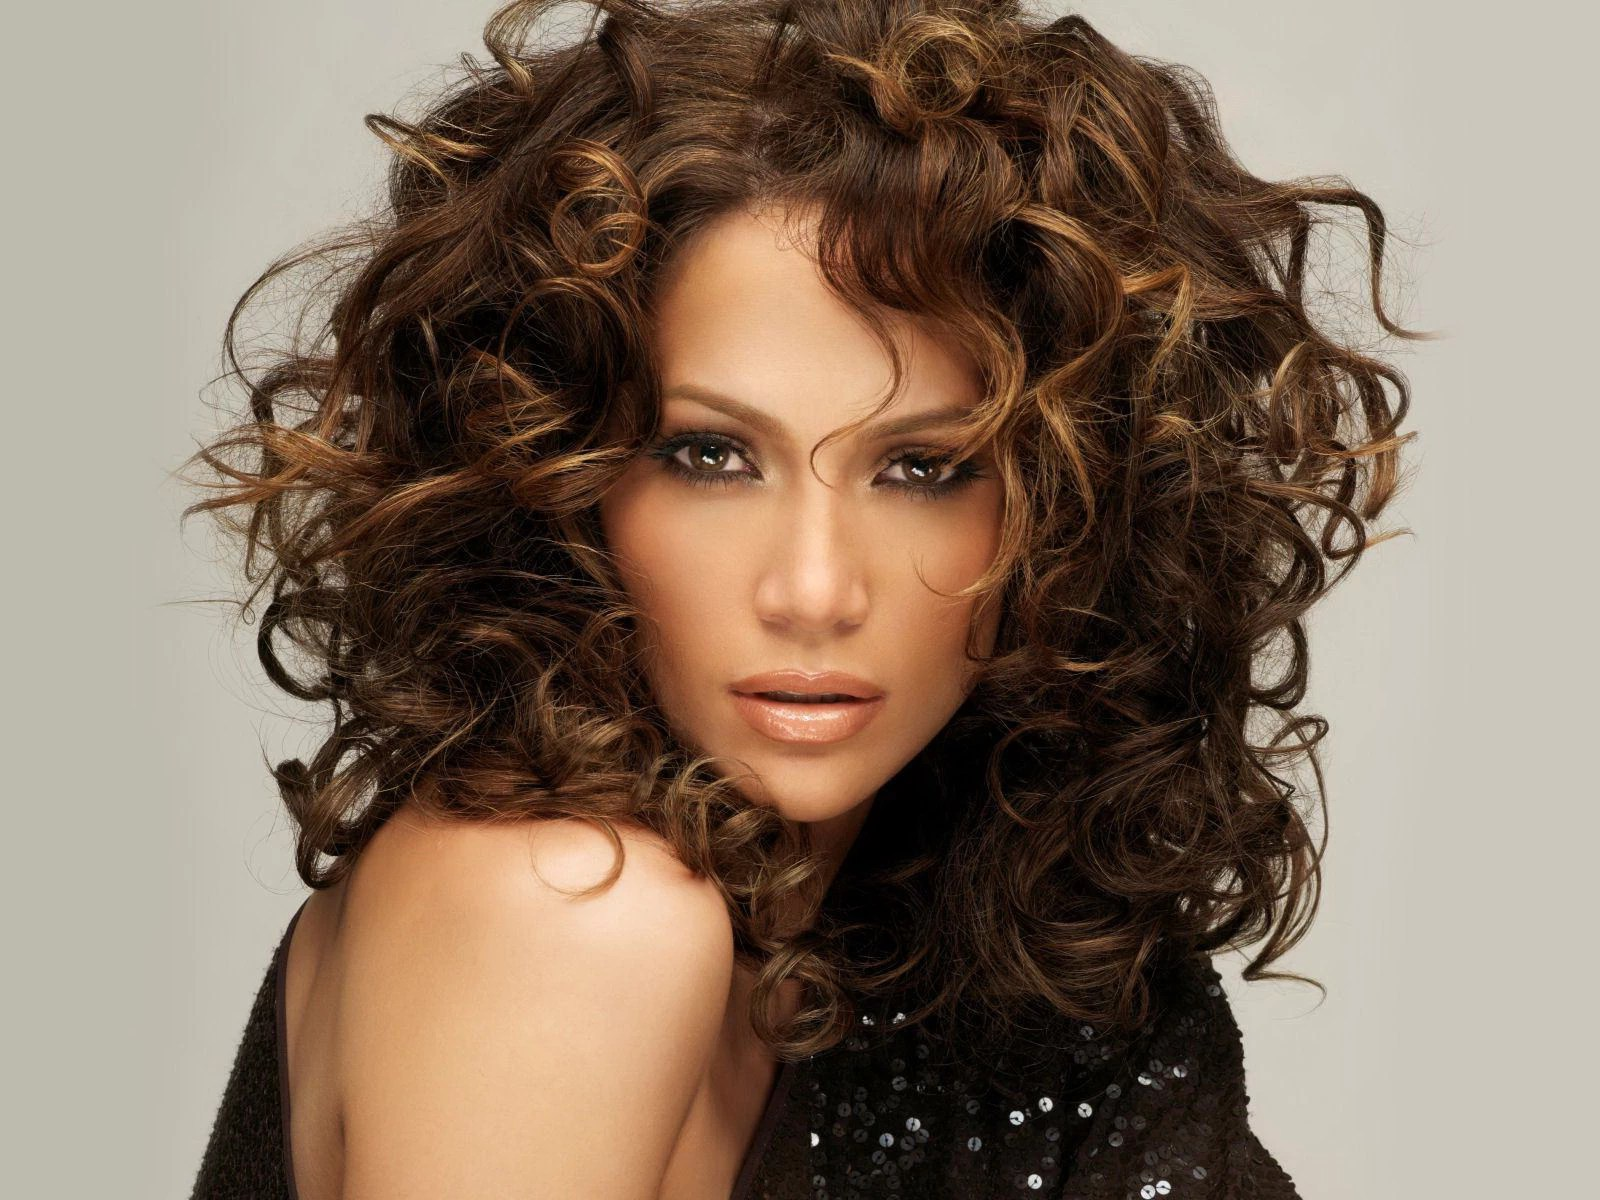 30 Of The Best Hairstyles For Naturally Curly Hair That Look